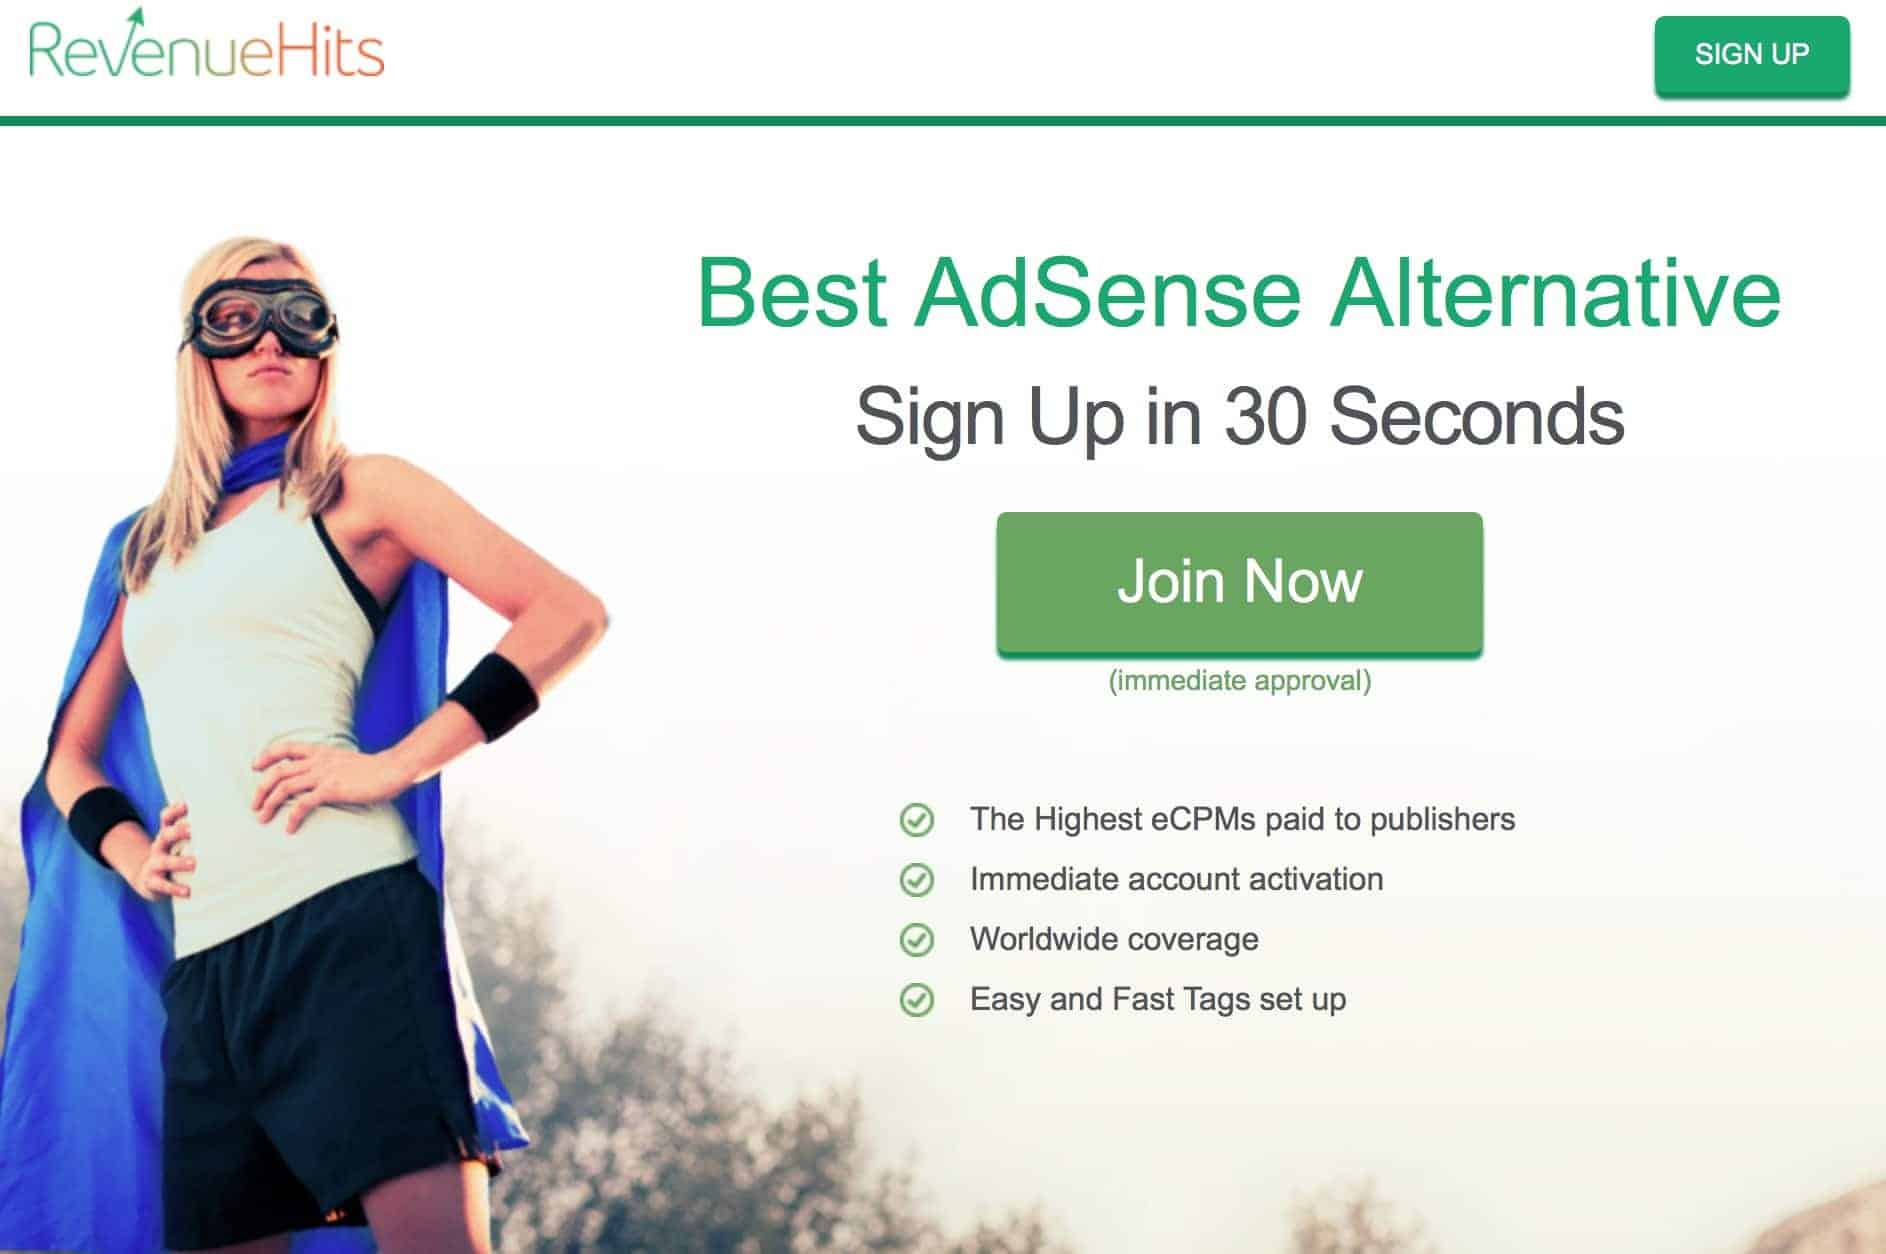 Revenue Hits Review - adsense alternative